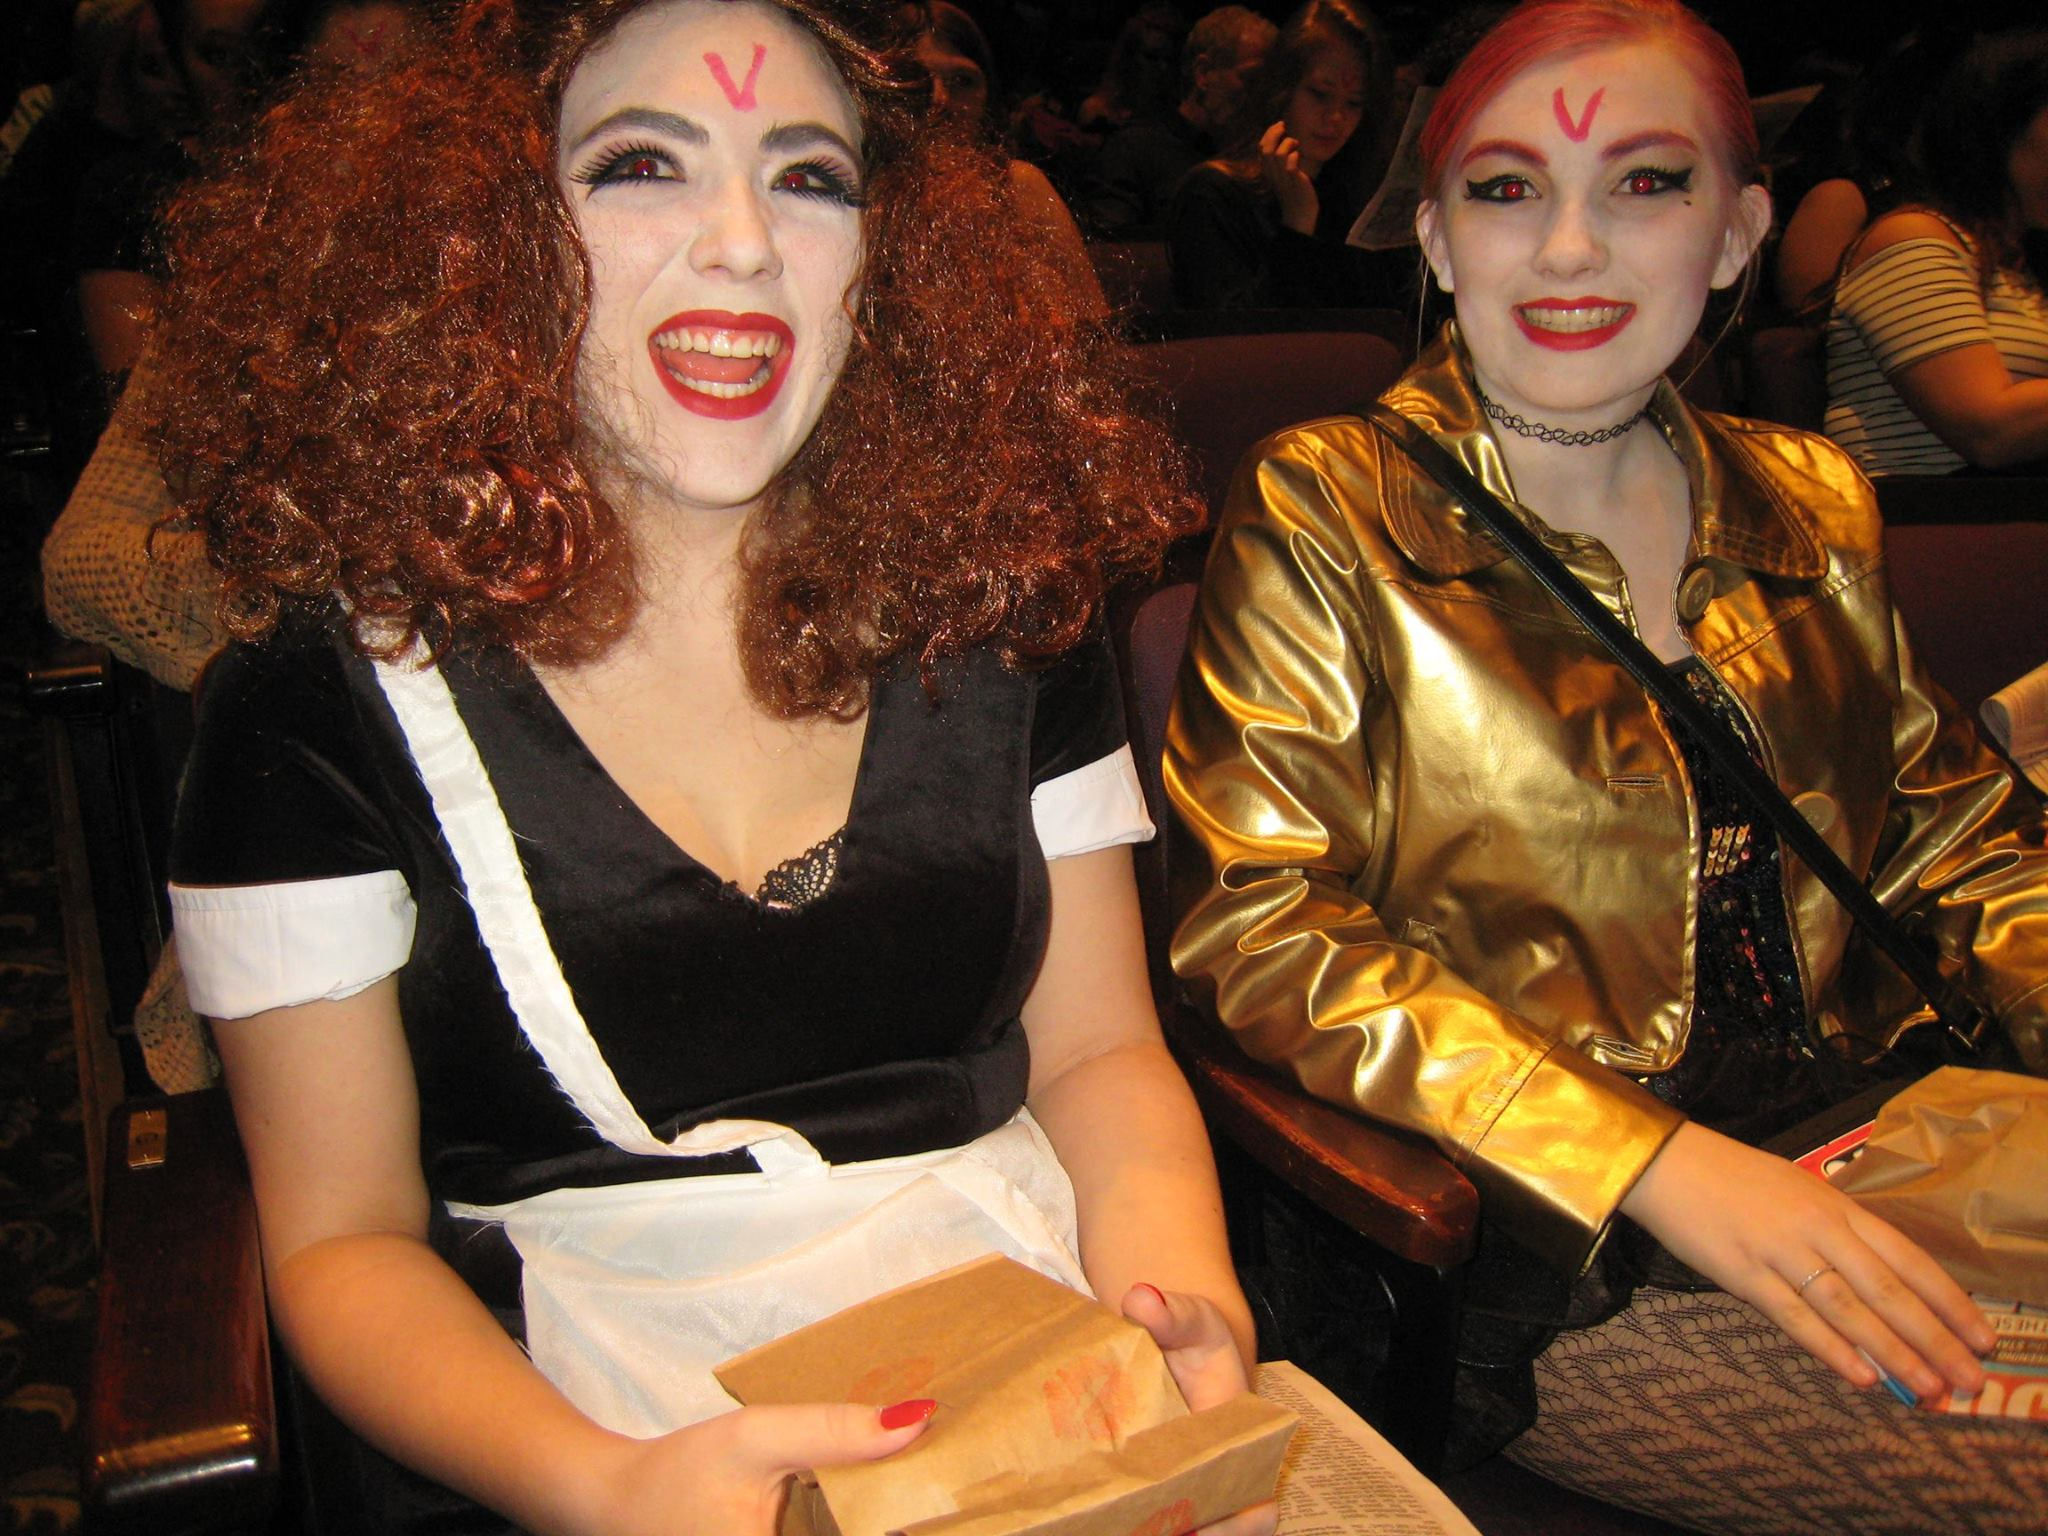 Rocky Horror Picture Show audience 7